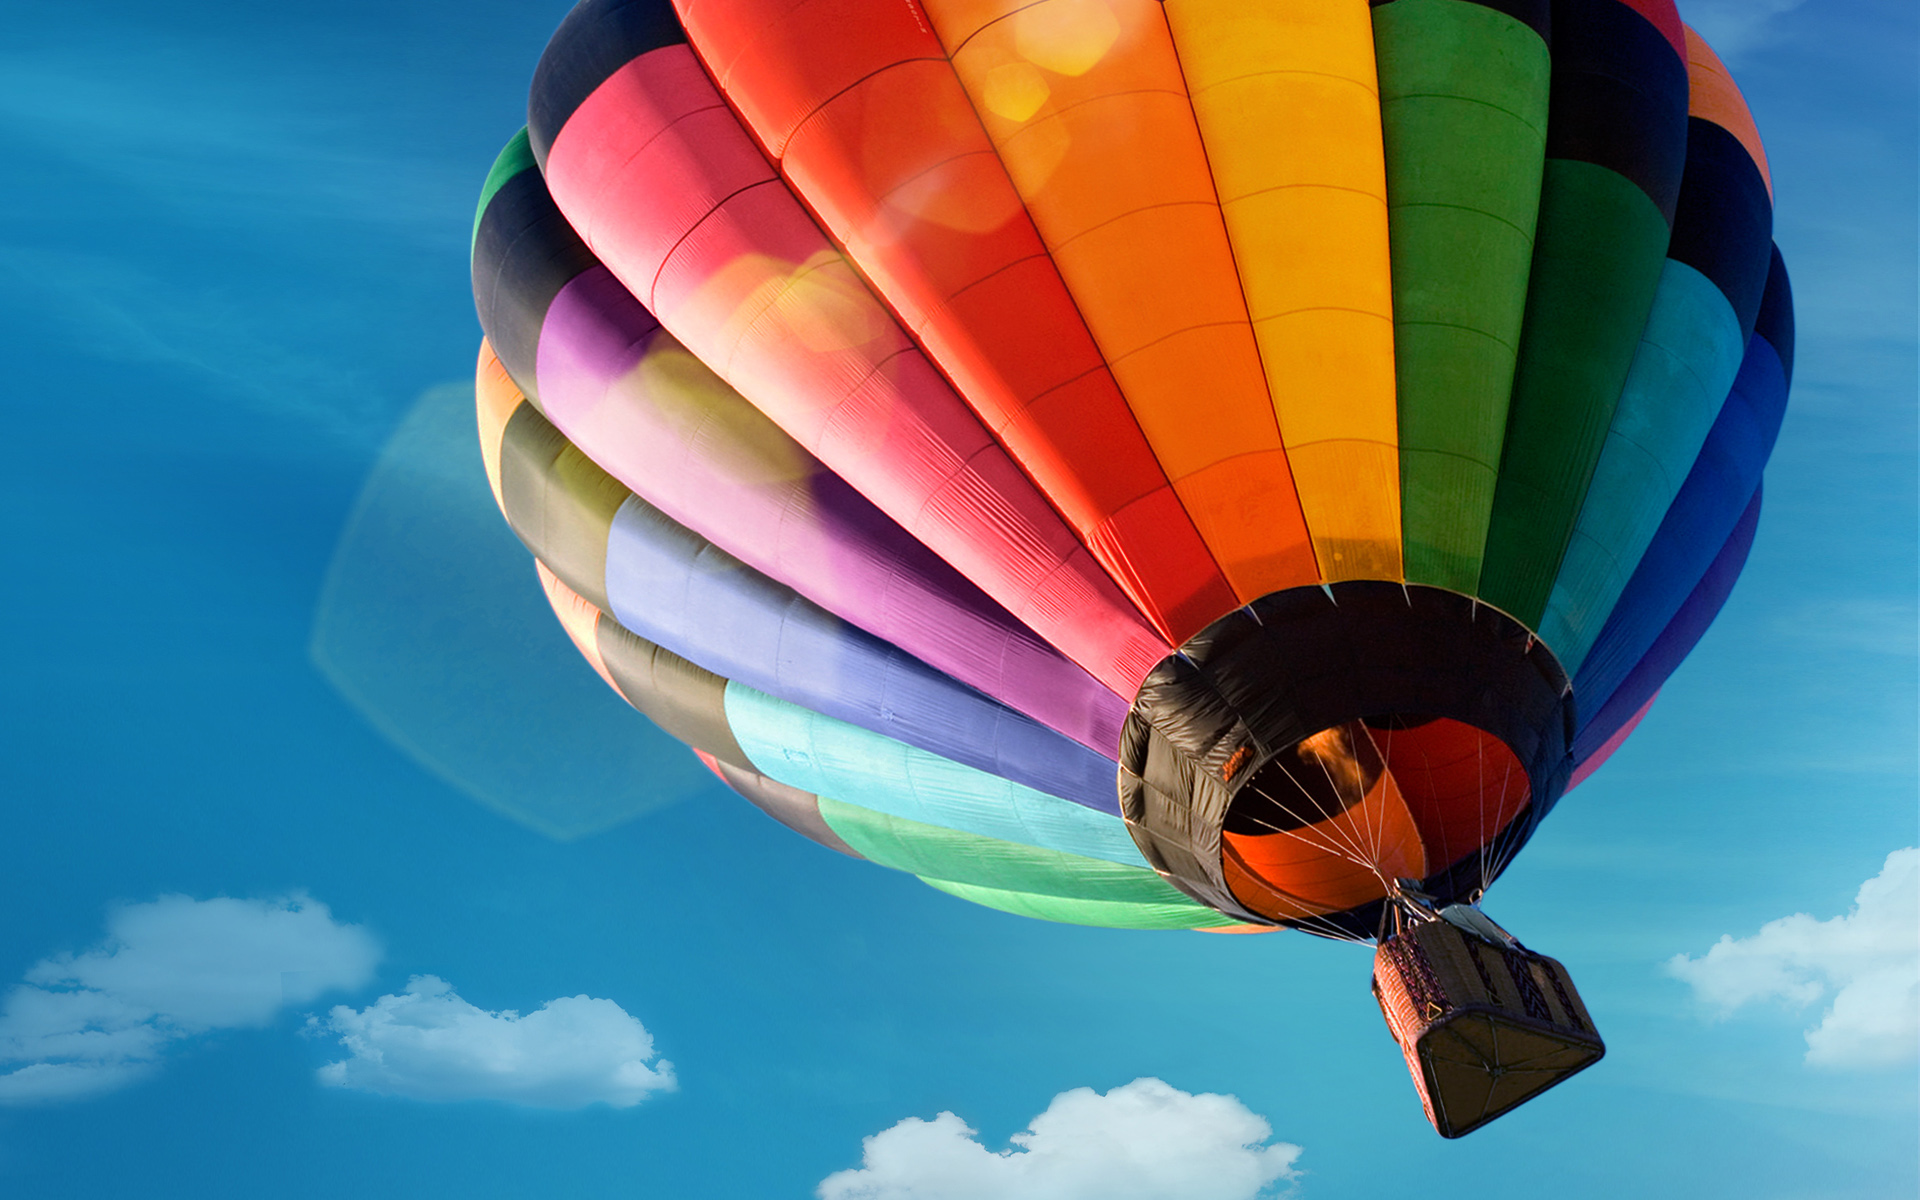 Colorfyl Hot Air Balloon